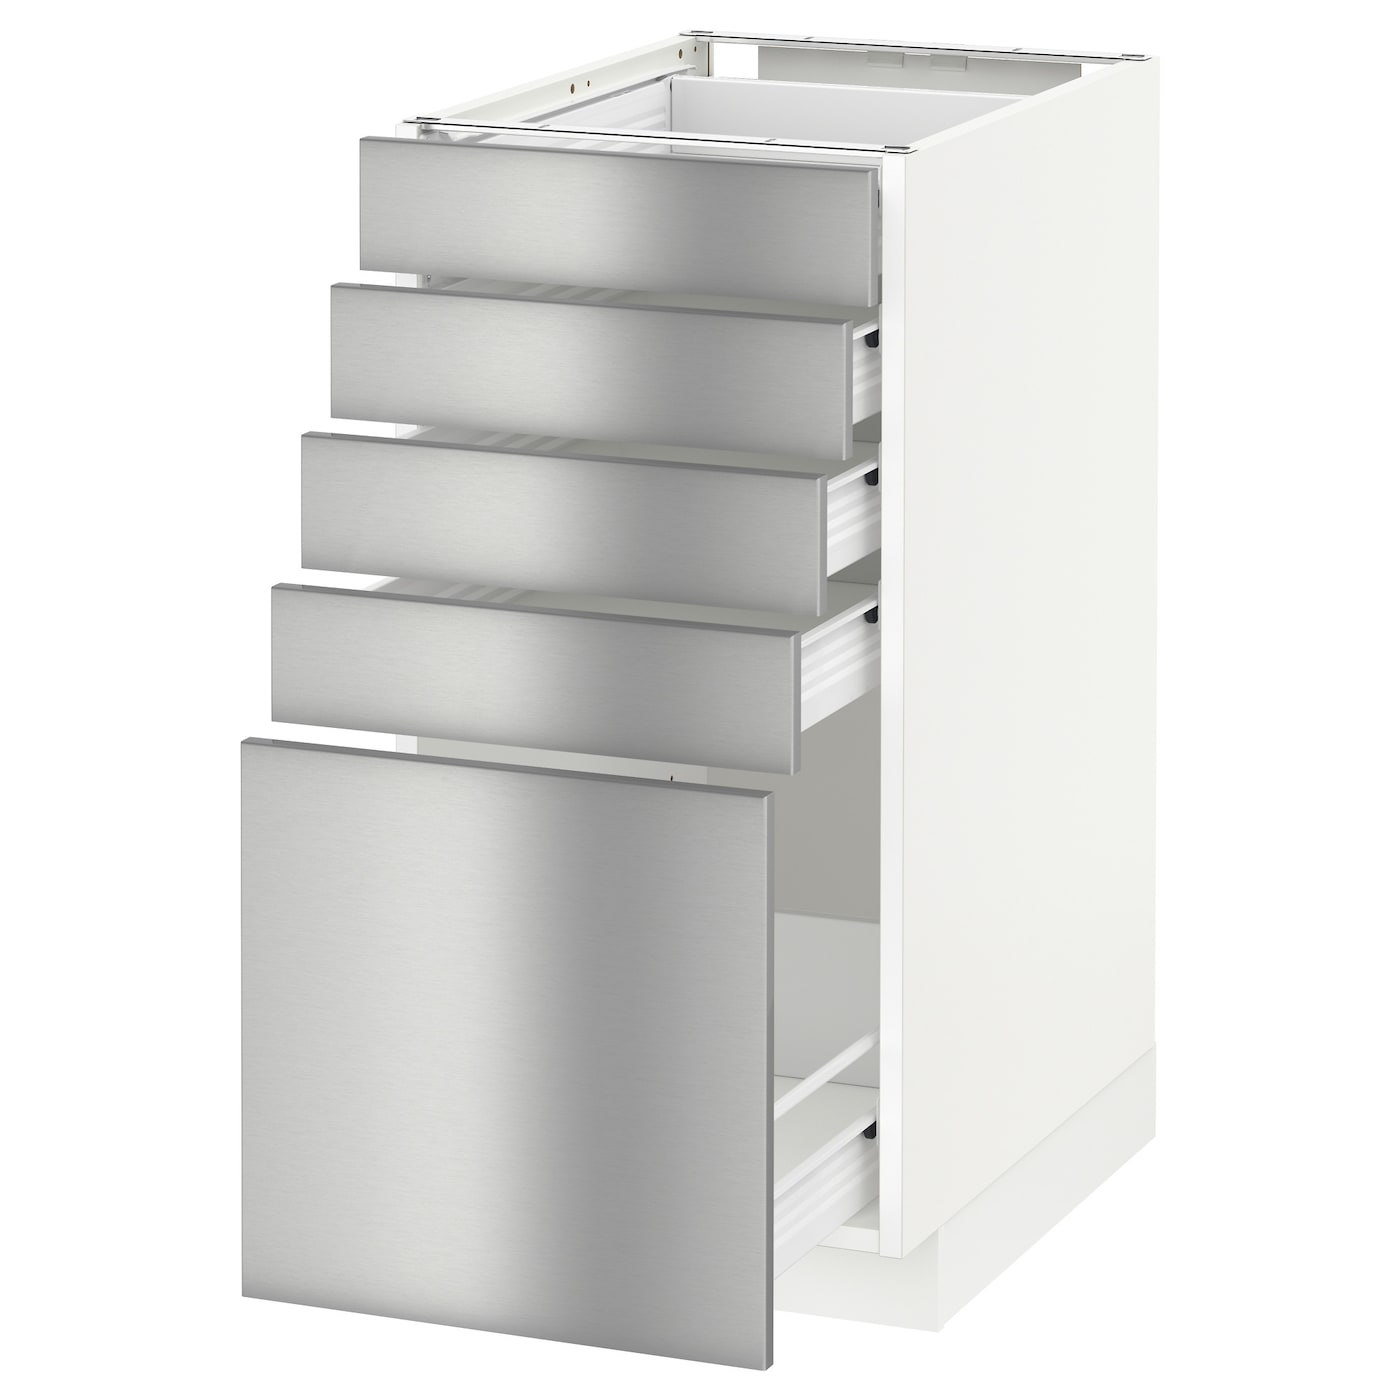 Metod f rvara base cabinet with 5 drawers white grevsta for Stainless steel kitchen base cabinets